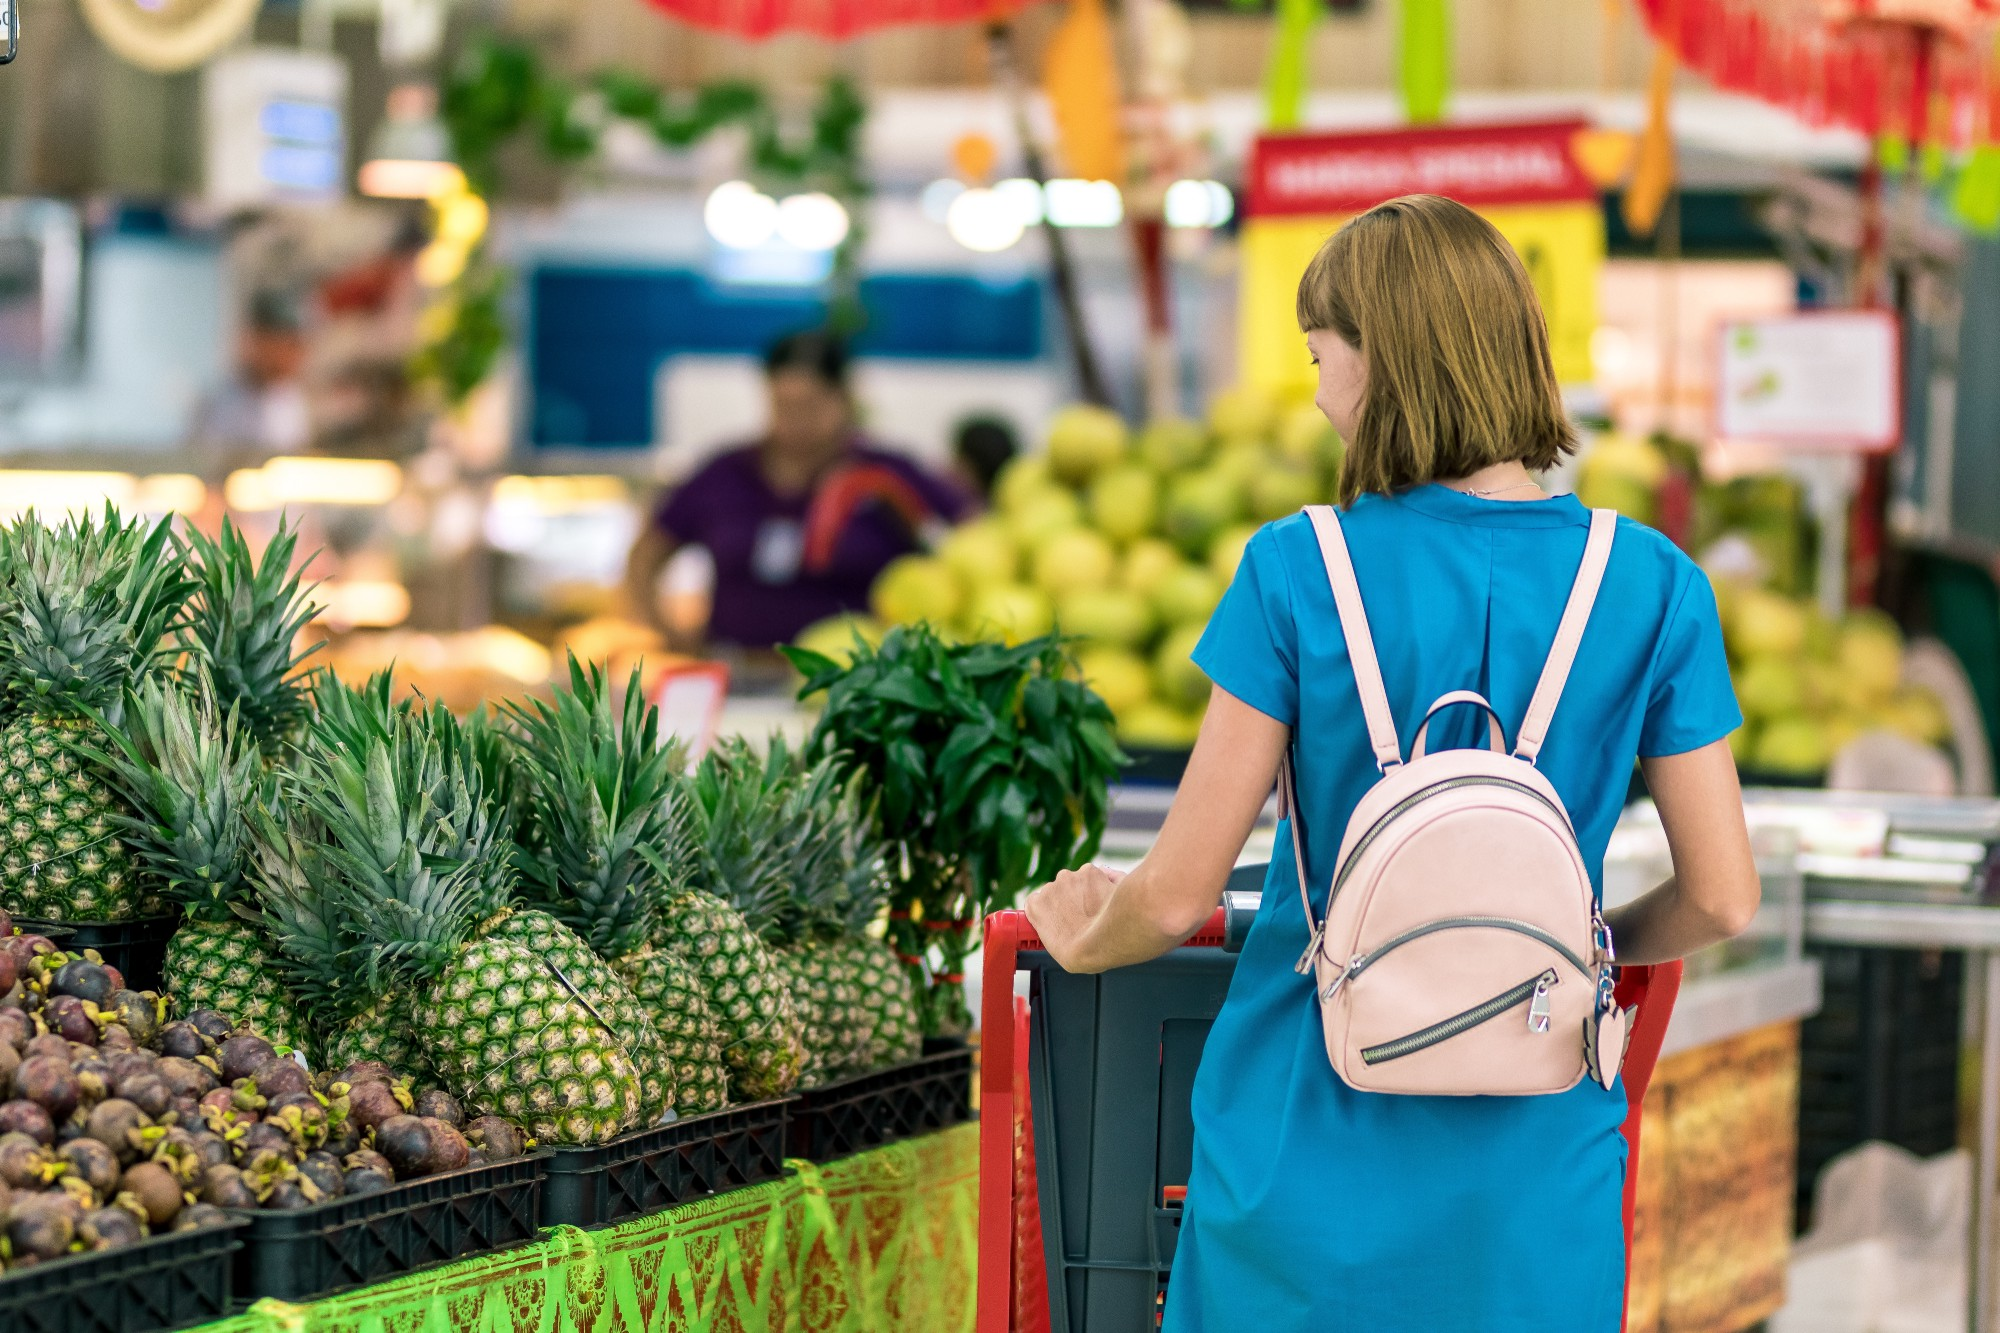 woman in blue dress with white backpack pushing shopping cart in store shopping for pineapple fruit vegetables